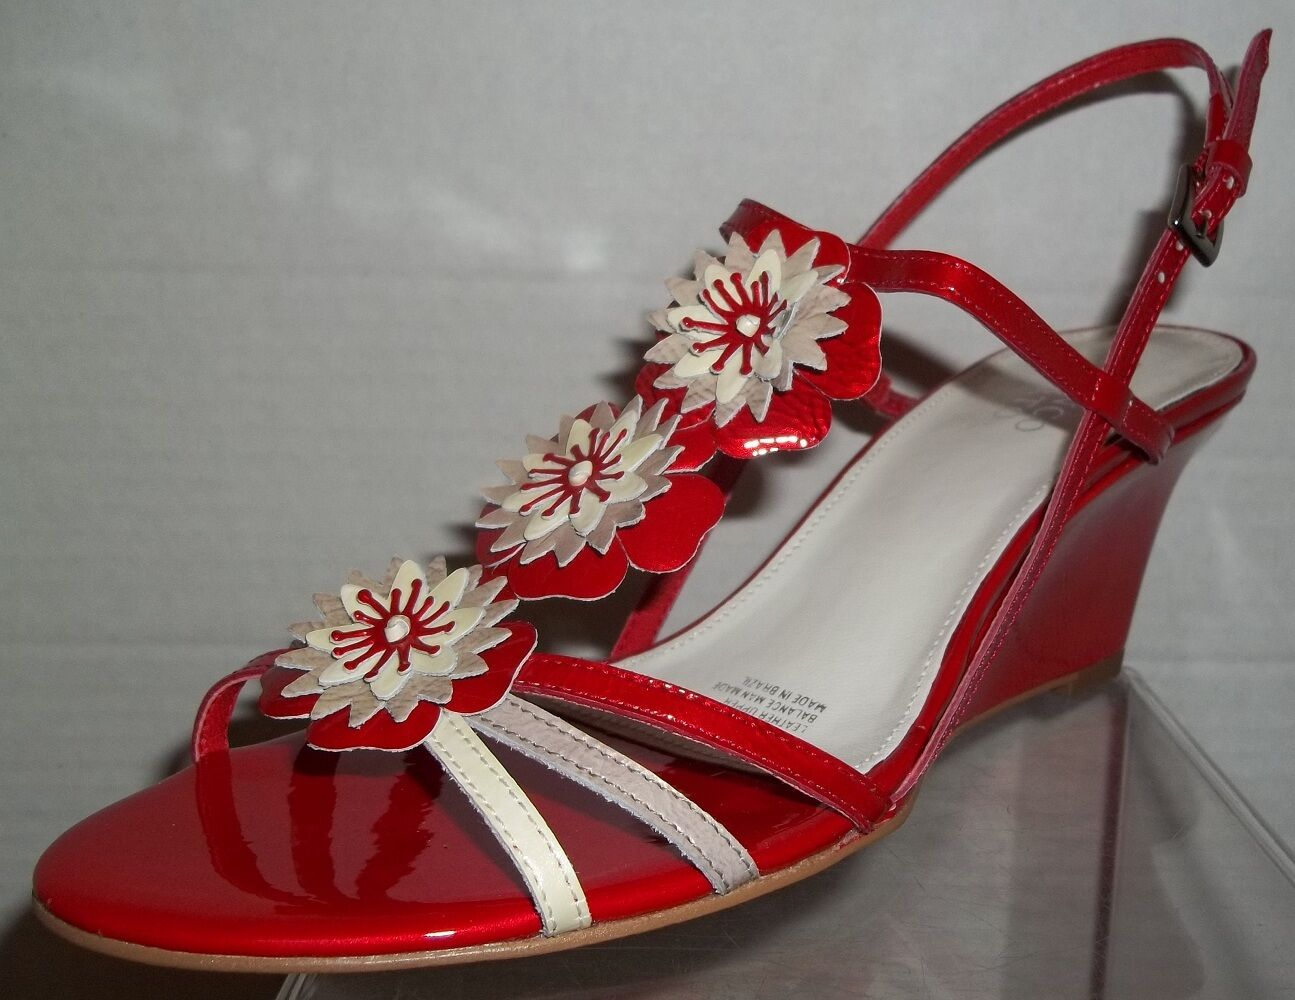 Franco Sarto  Size 8 Coral Red Patent Leather Strappy Pumps Womens shoes NIB